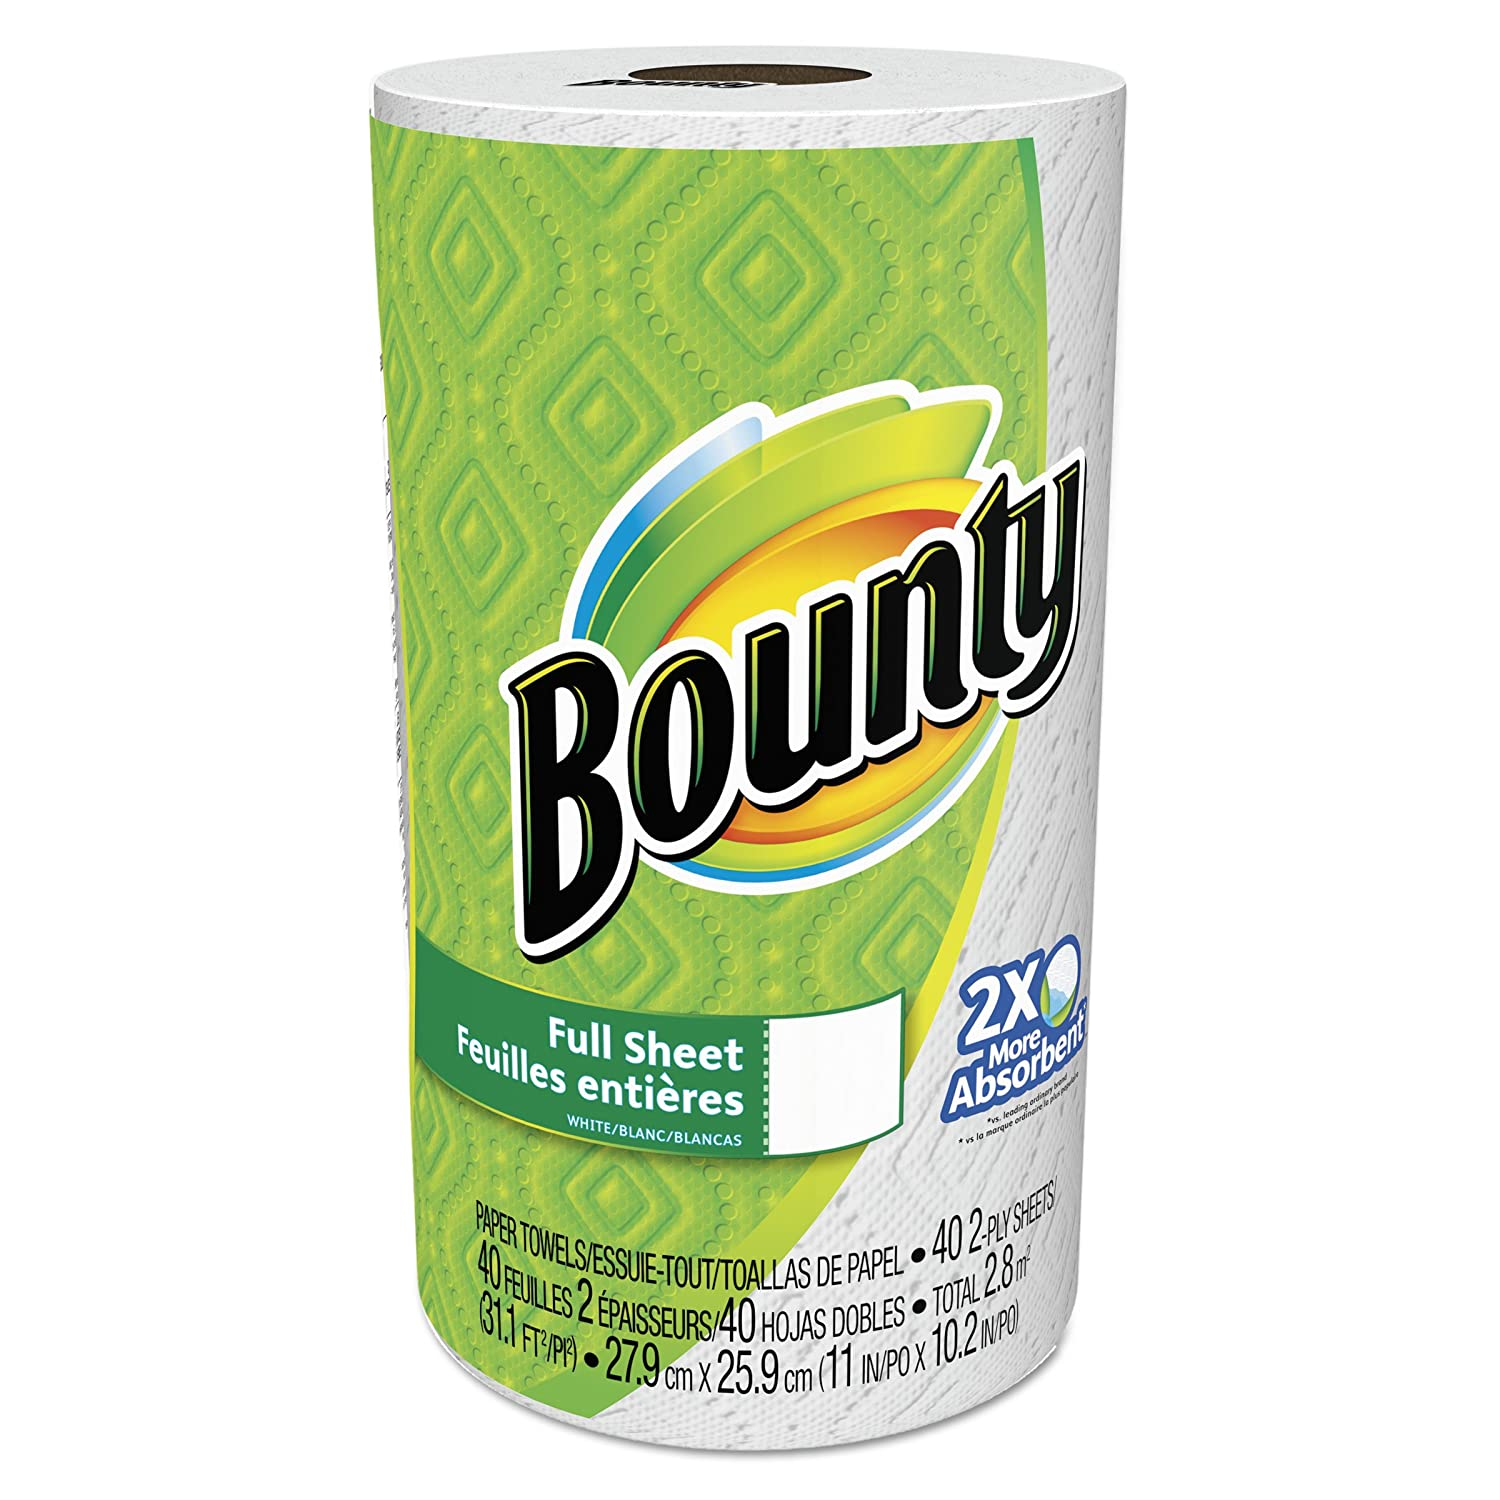 Amazon.com: Bounty Paper Towels, White, Regular Roll, 40 Sheets Per Roll (Case of 30): Health & Personal Care